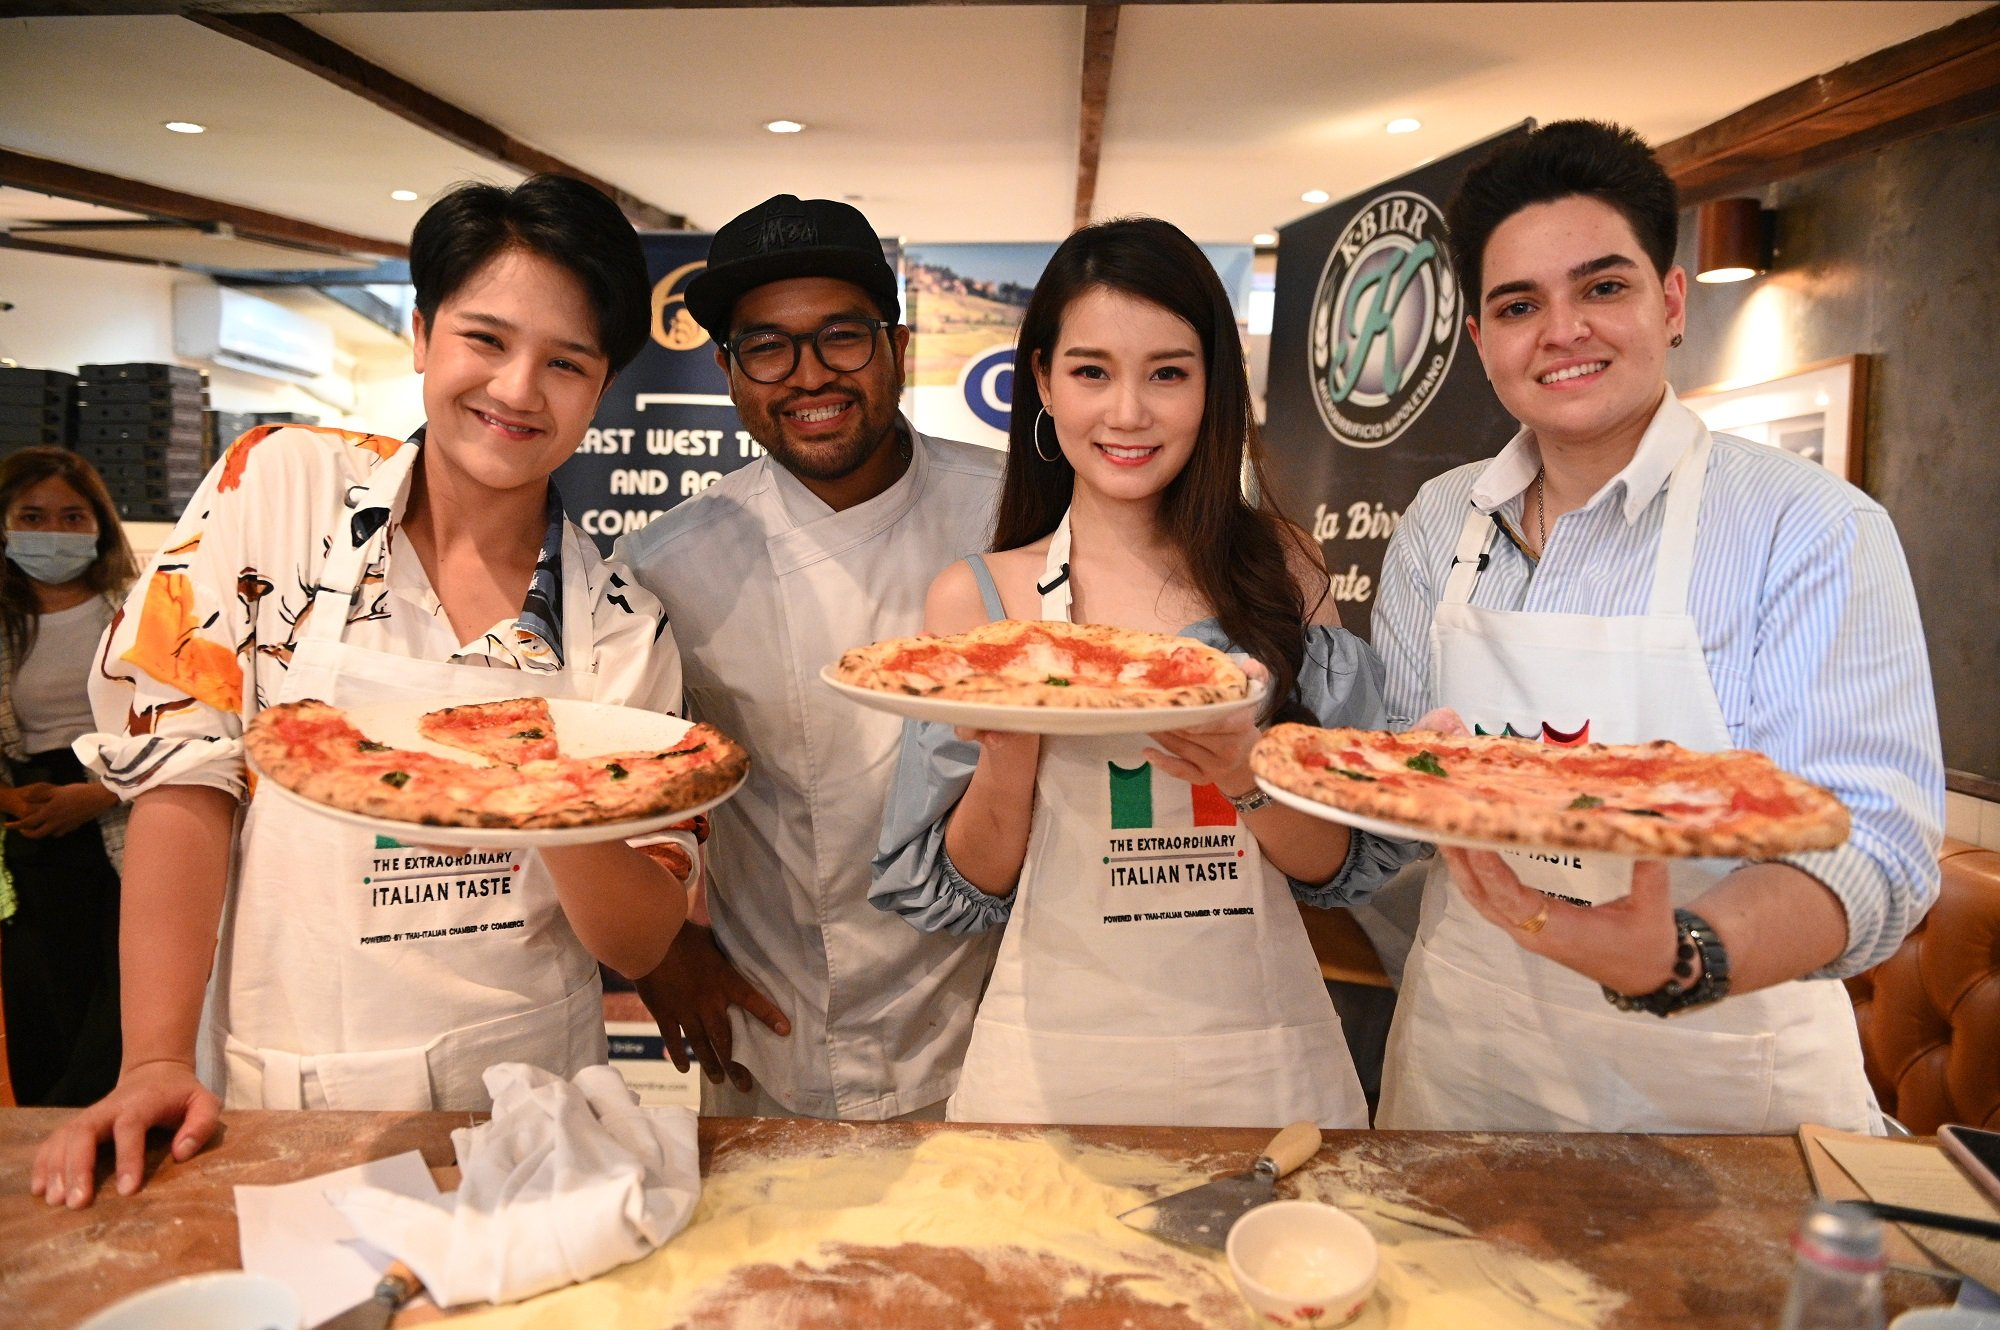 Authentic Italian Table: All you need is cooking PIZZA